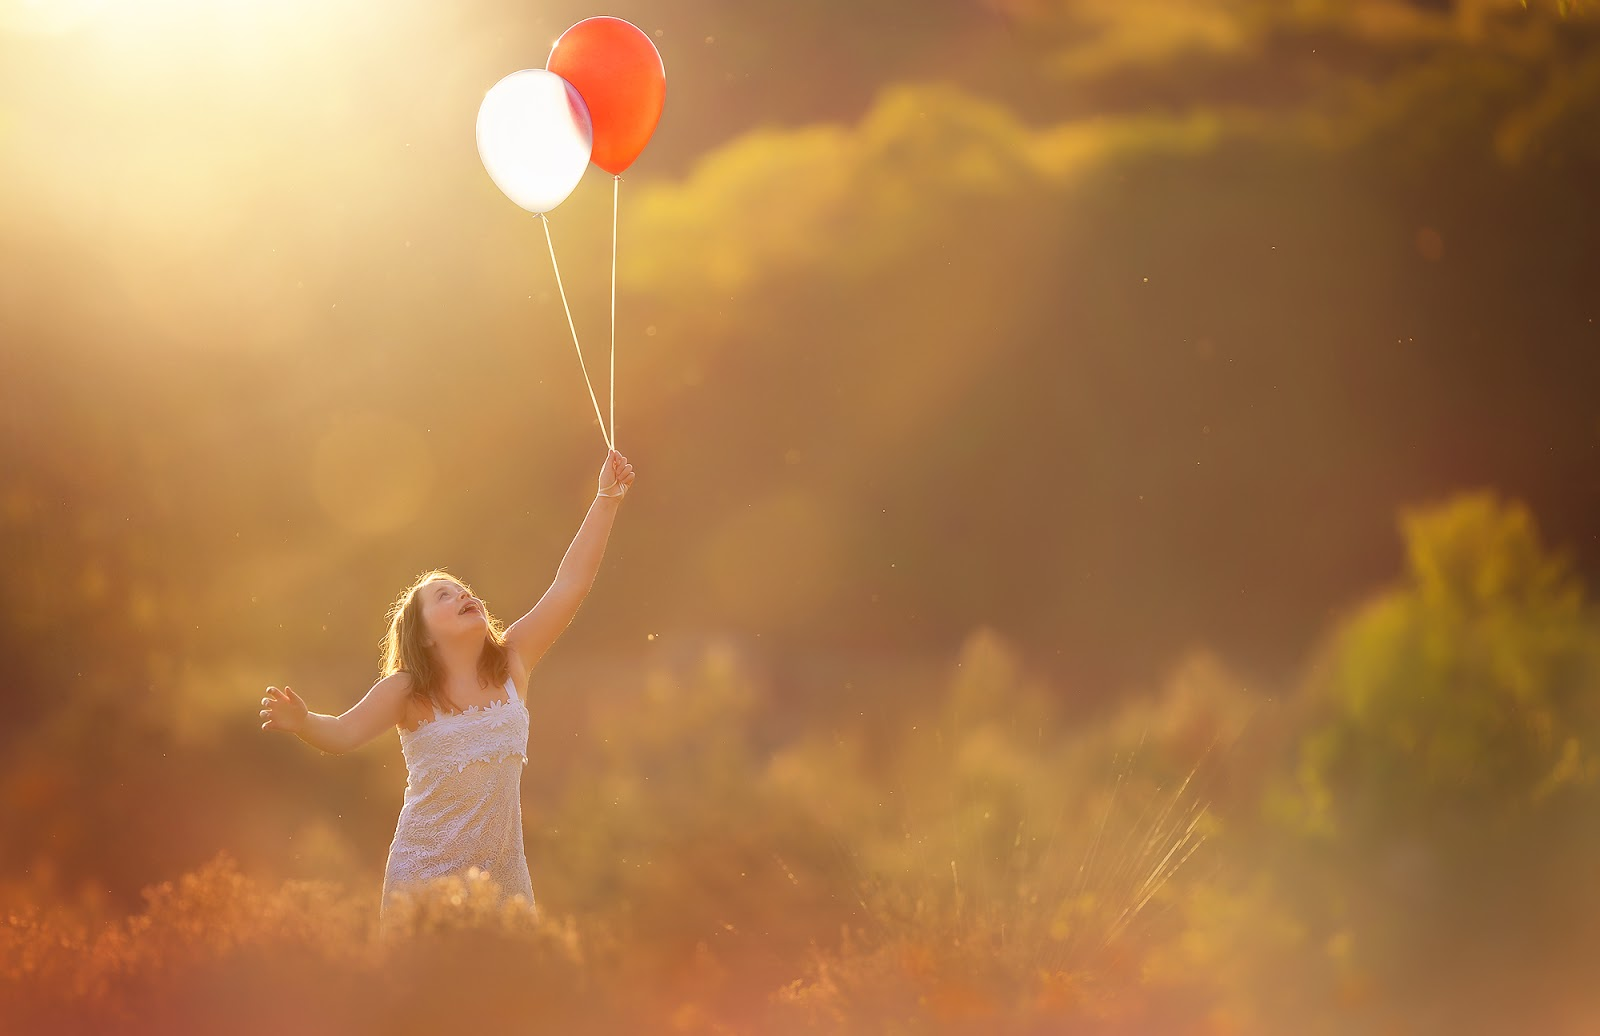 Canon color sunset portrait running with big red and white balloons through a field of gold by Willie Kers